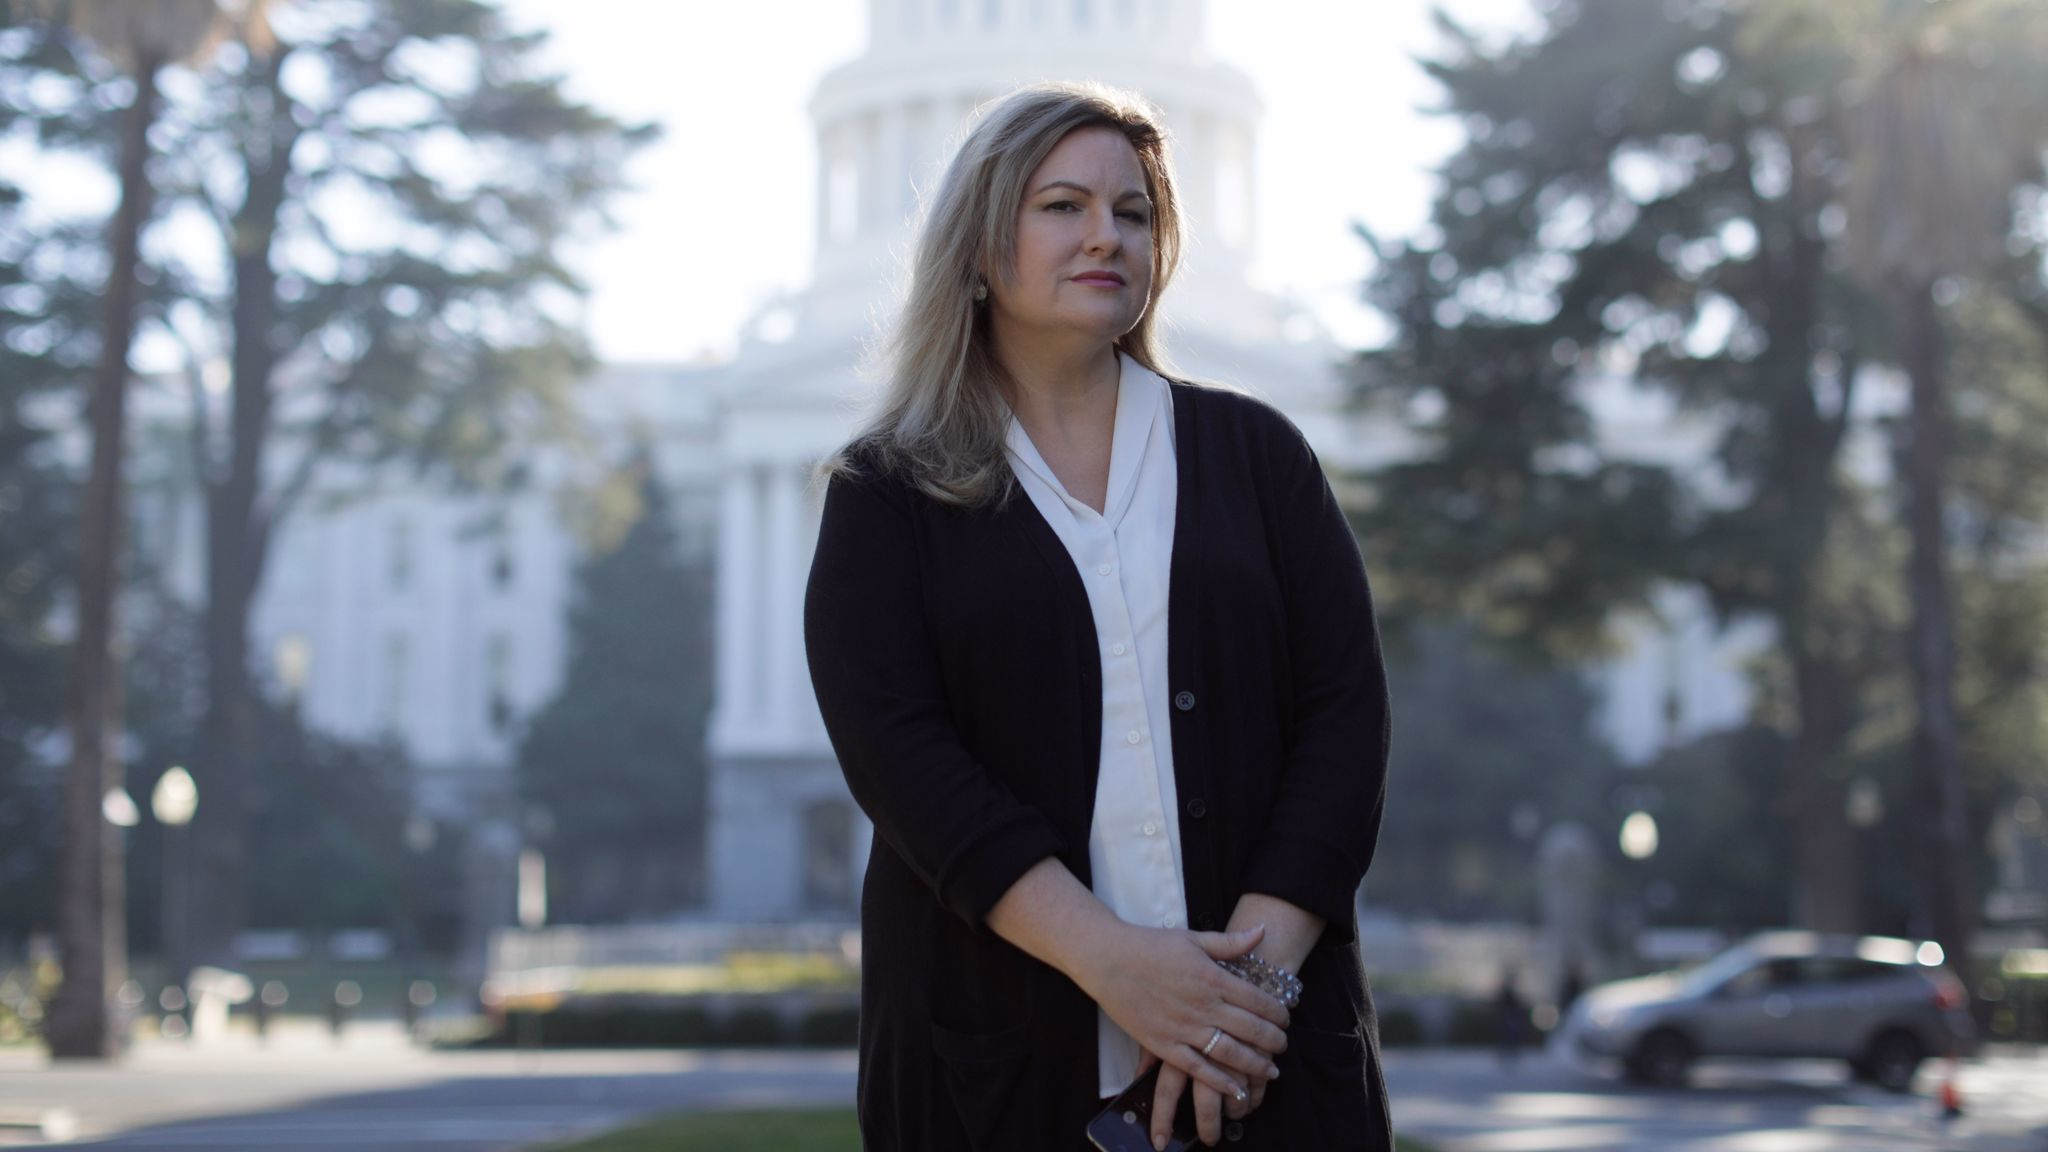 Gyore spoke publicly for the first time about a 2009 complaint she filed against Bocanegra.